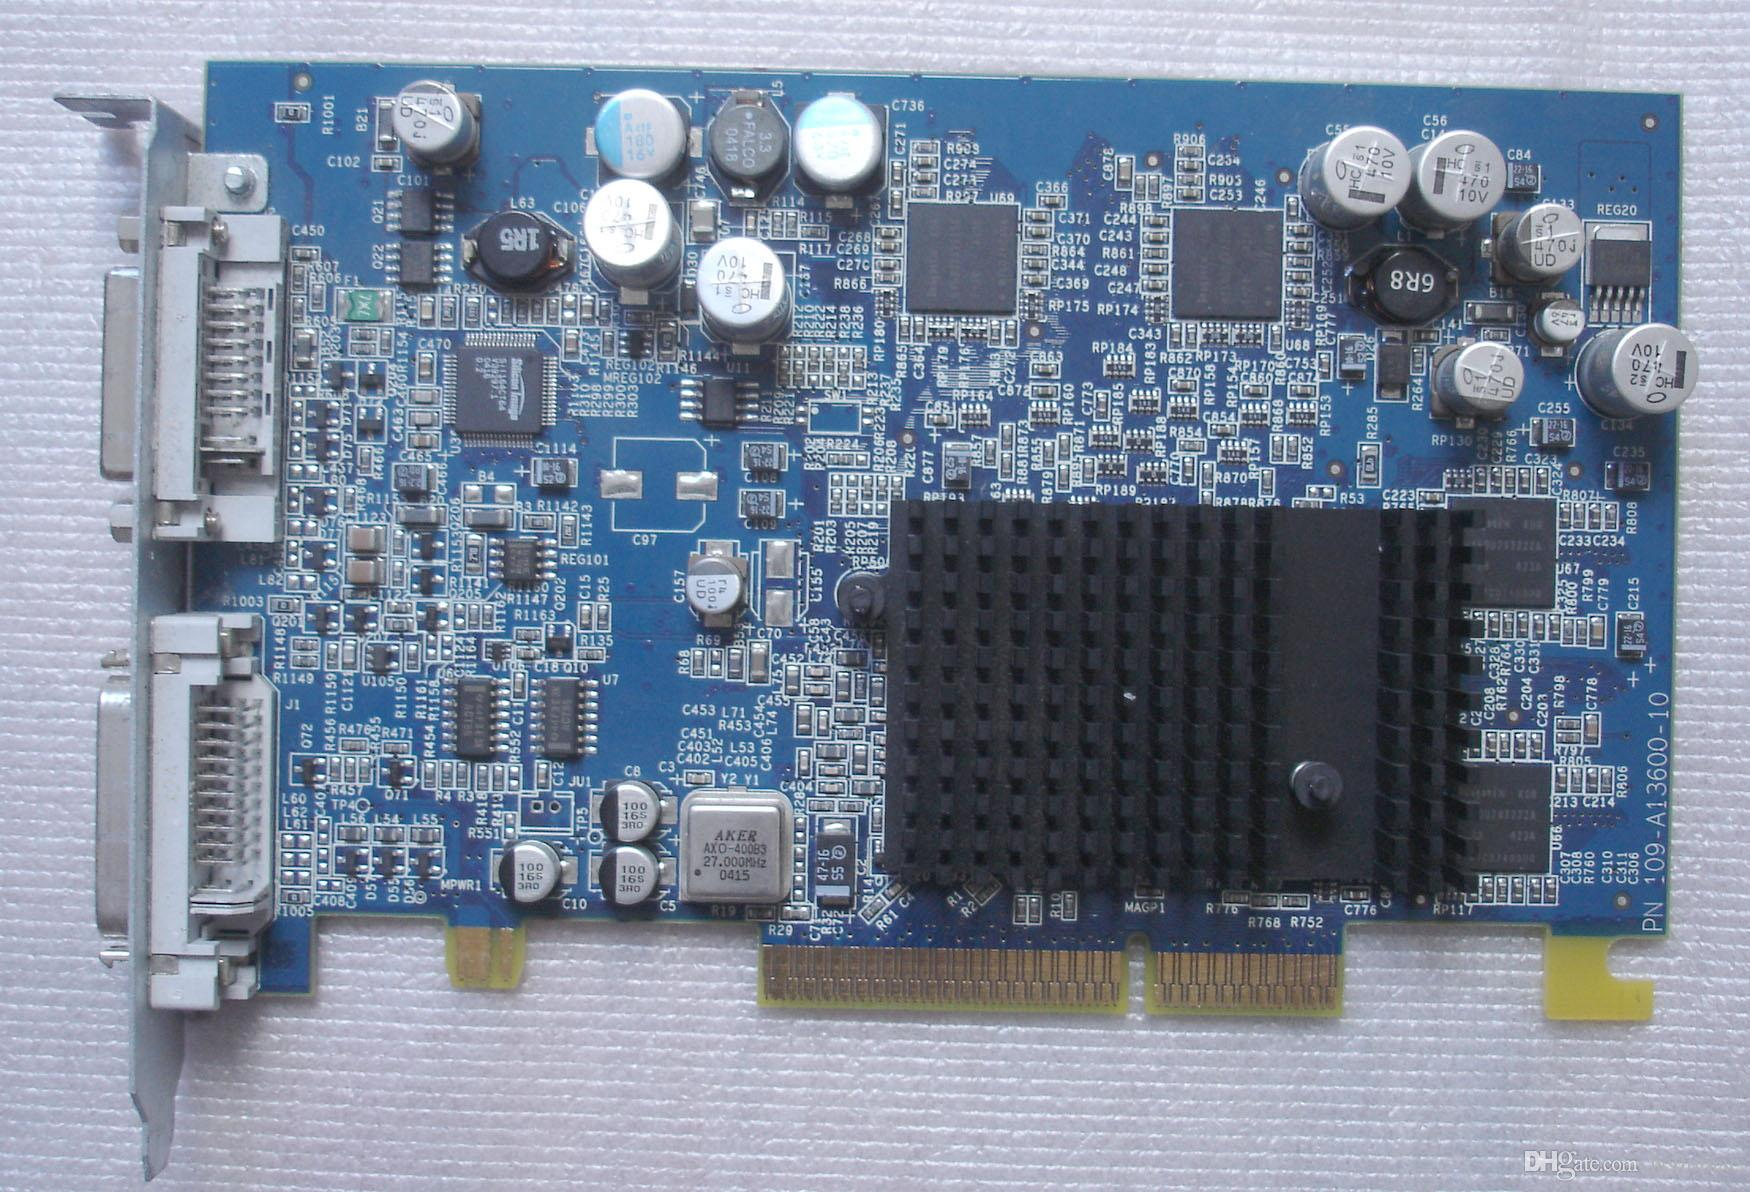 661-3230 603-4625 630-6448 661-3230 109-A13600-10 630-6630 Radeon 9600 128Mb AGP ADC+DVI Graphics Video Card for Power A1047 G5